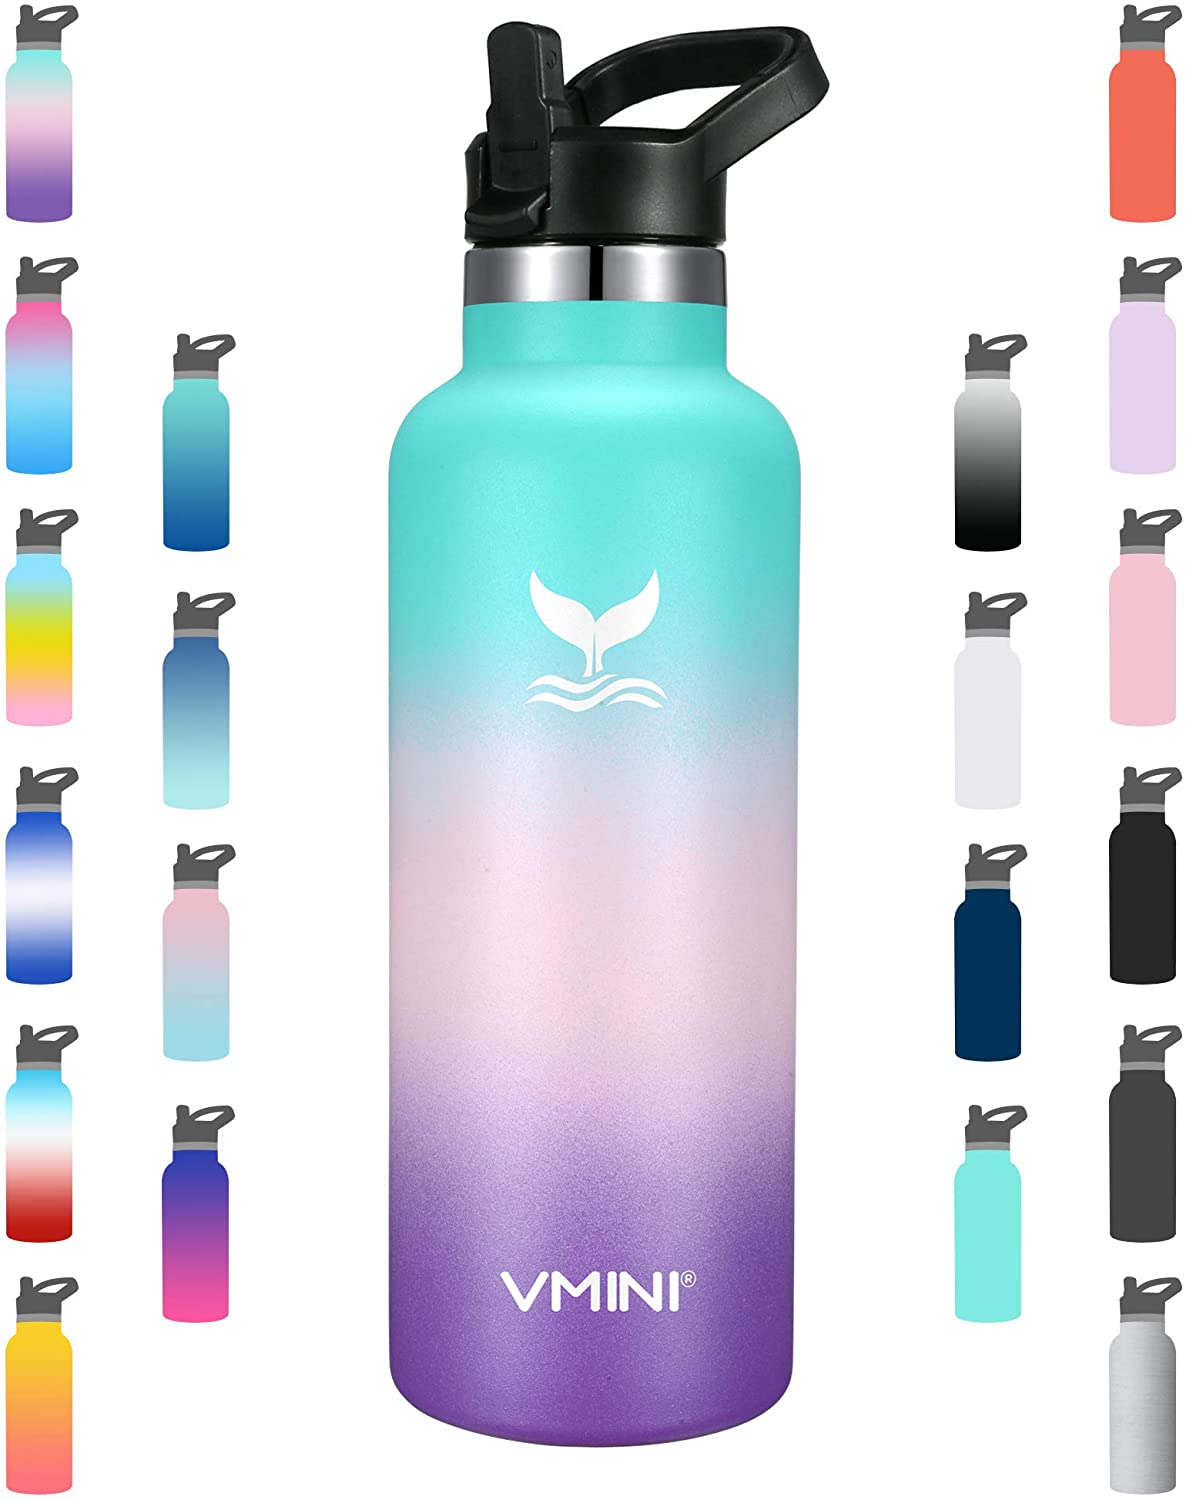 Vmini Water Max 77% OFF Bottle - Bargain sale Standard Mouth Ins Stainless Vacuum Steel